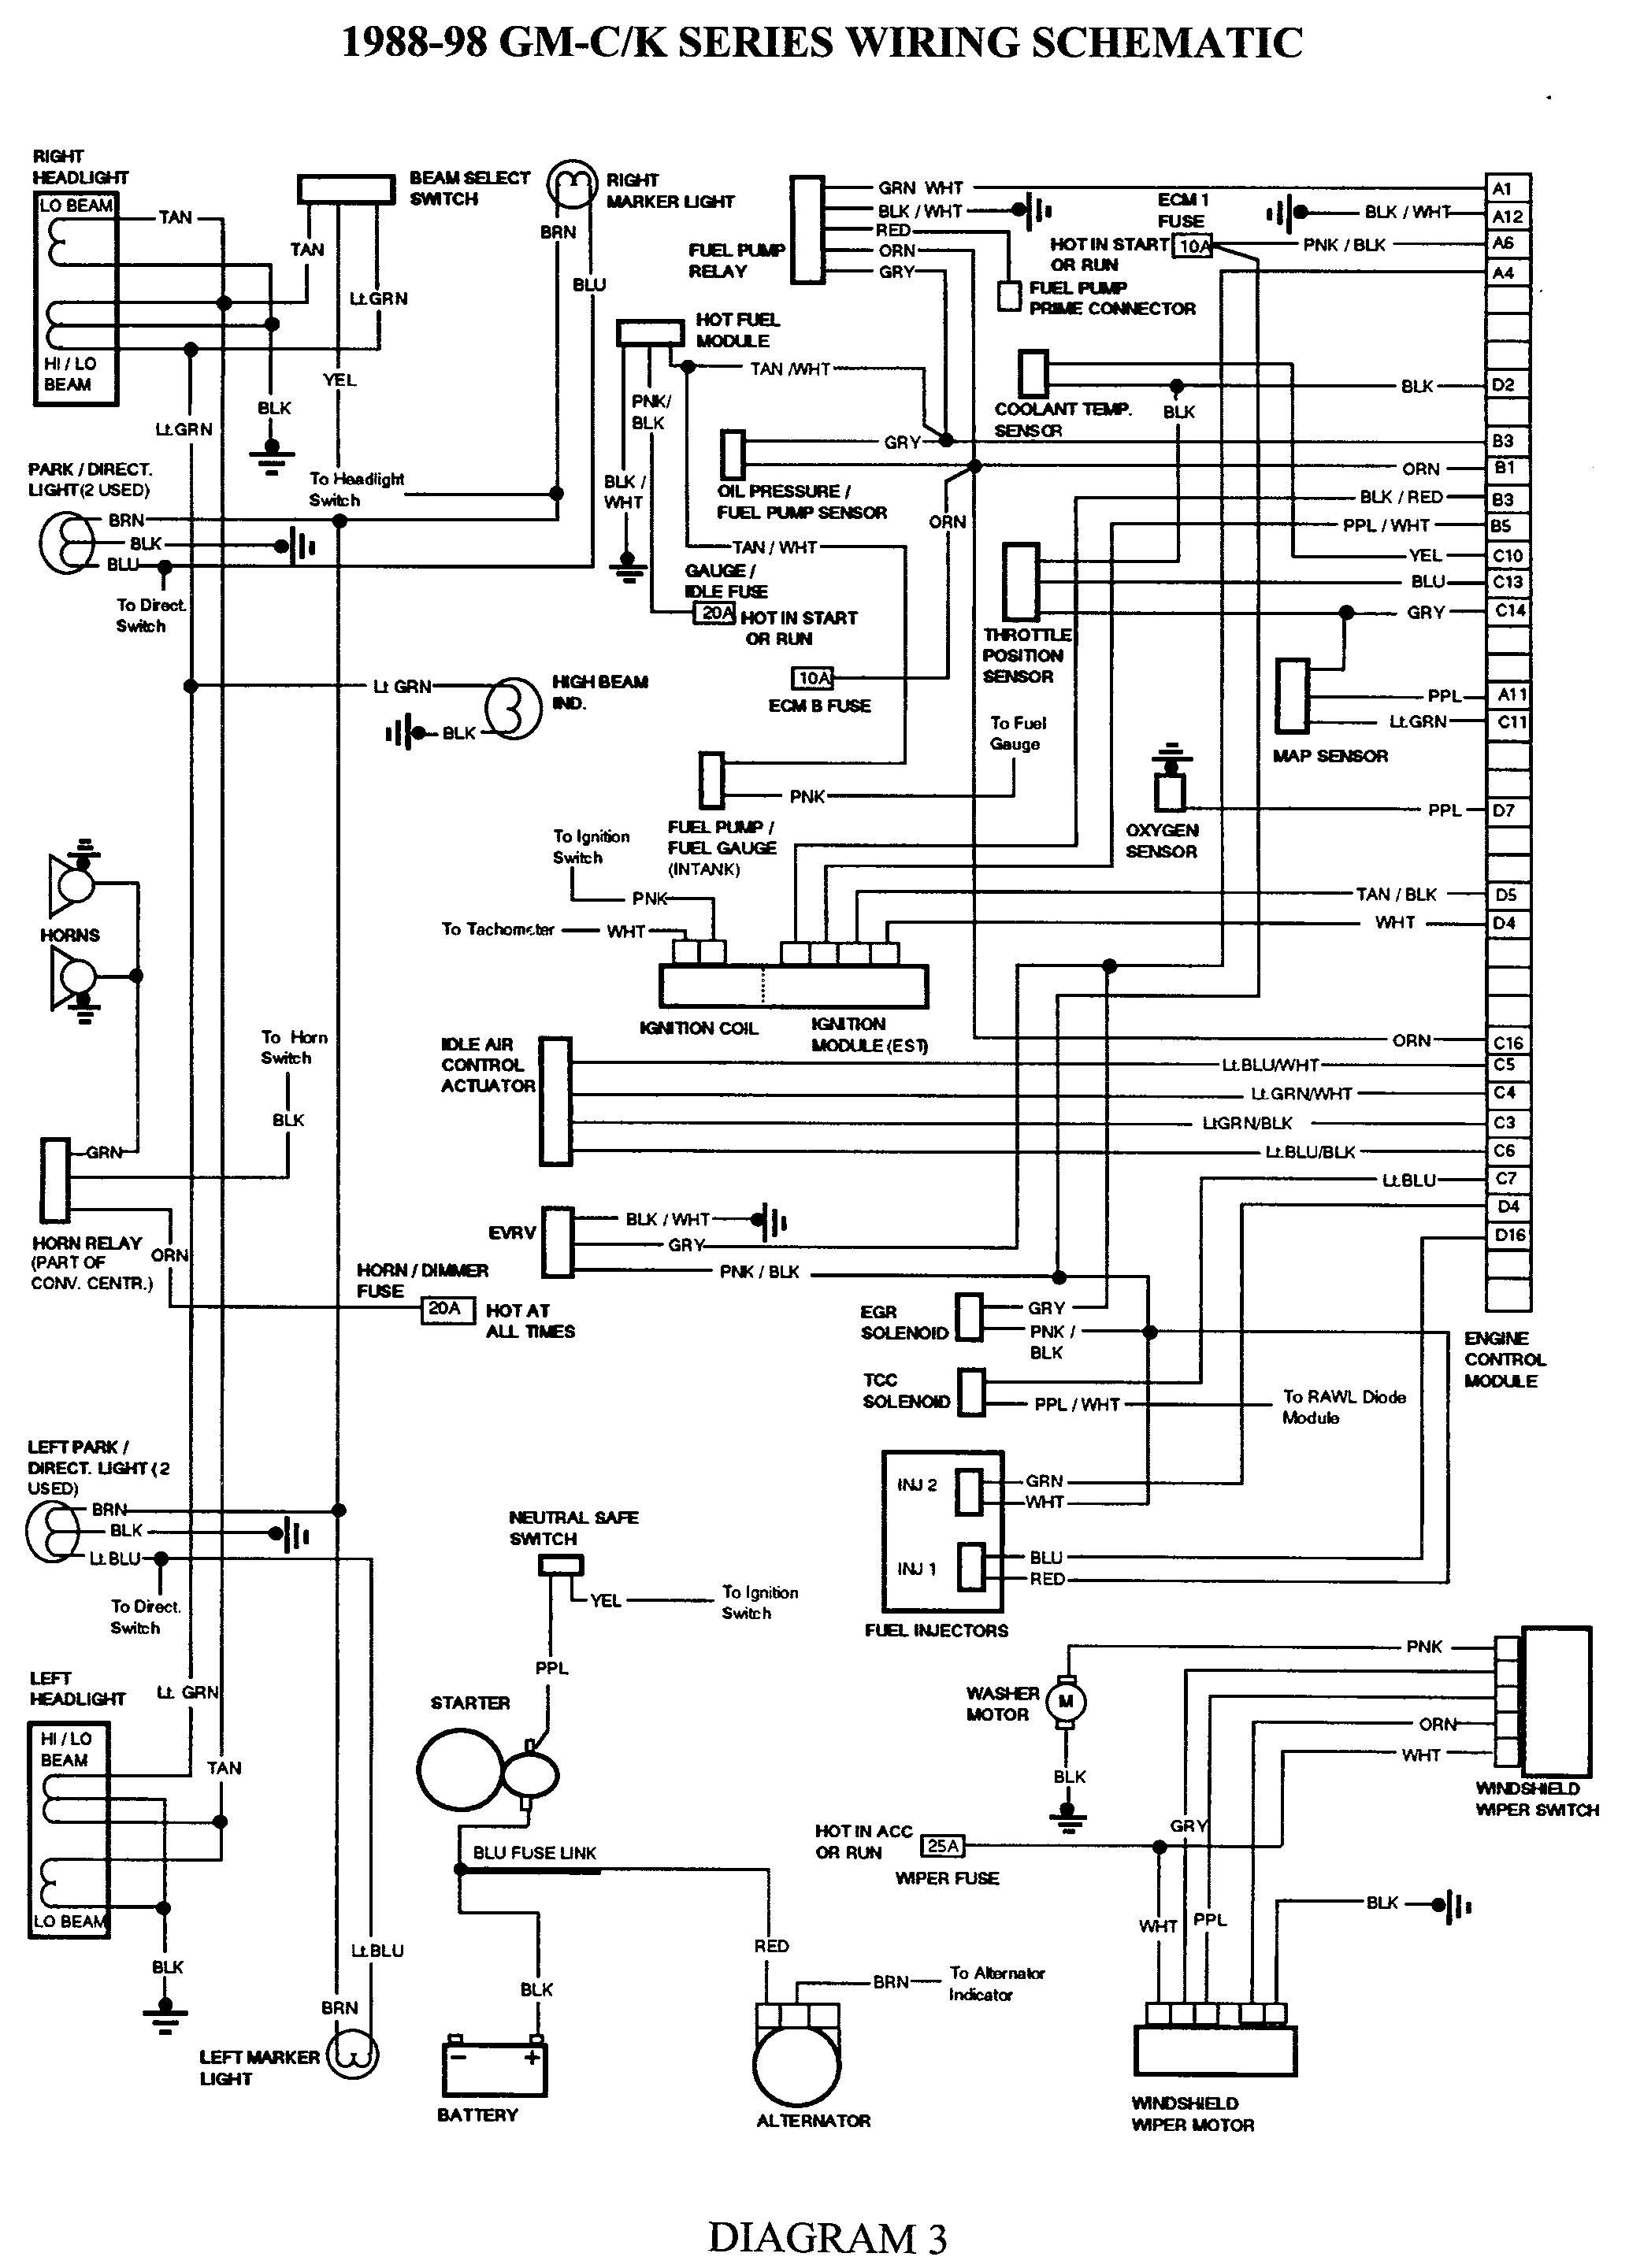 1996 Lincoln town Car Wiring Diagram 98 Gmc Sierra Headlight Wiring Diagram Circuit Diagrams Image Of 1996 Lincoln town Car Wiring Diagram